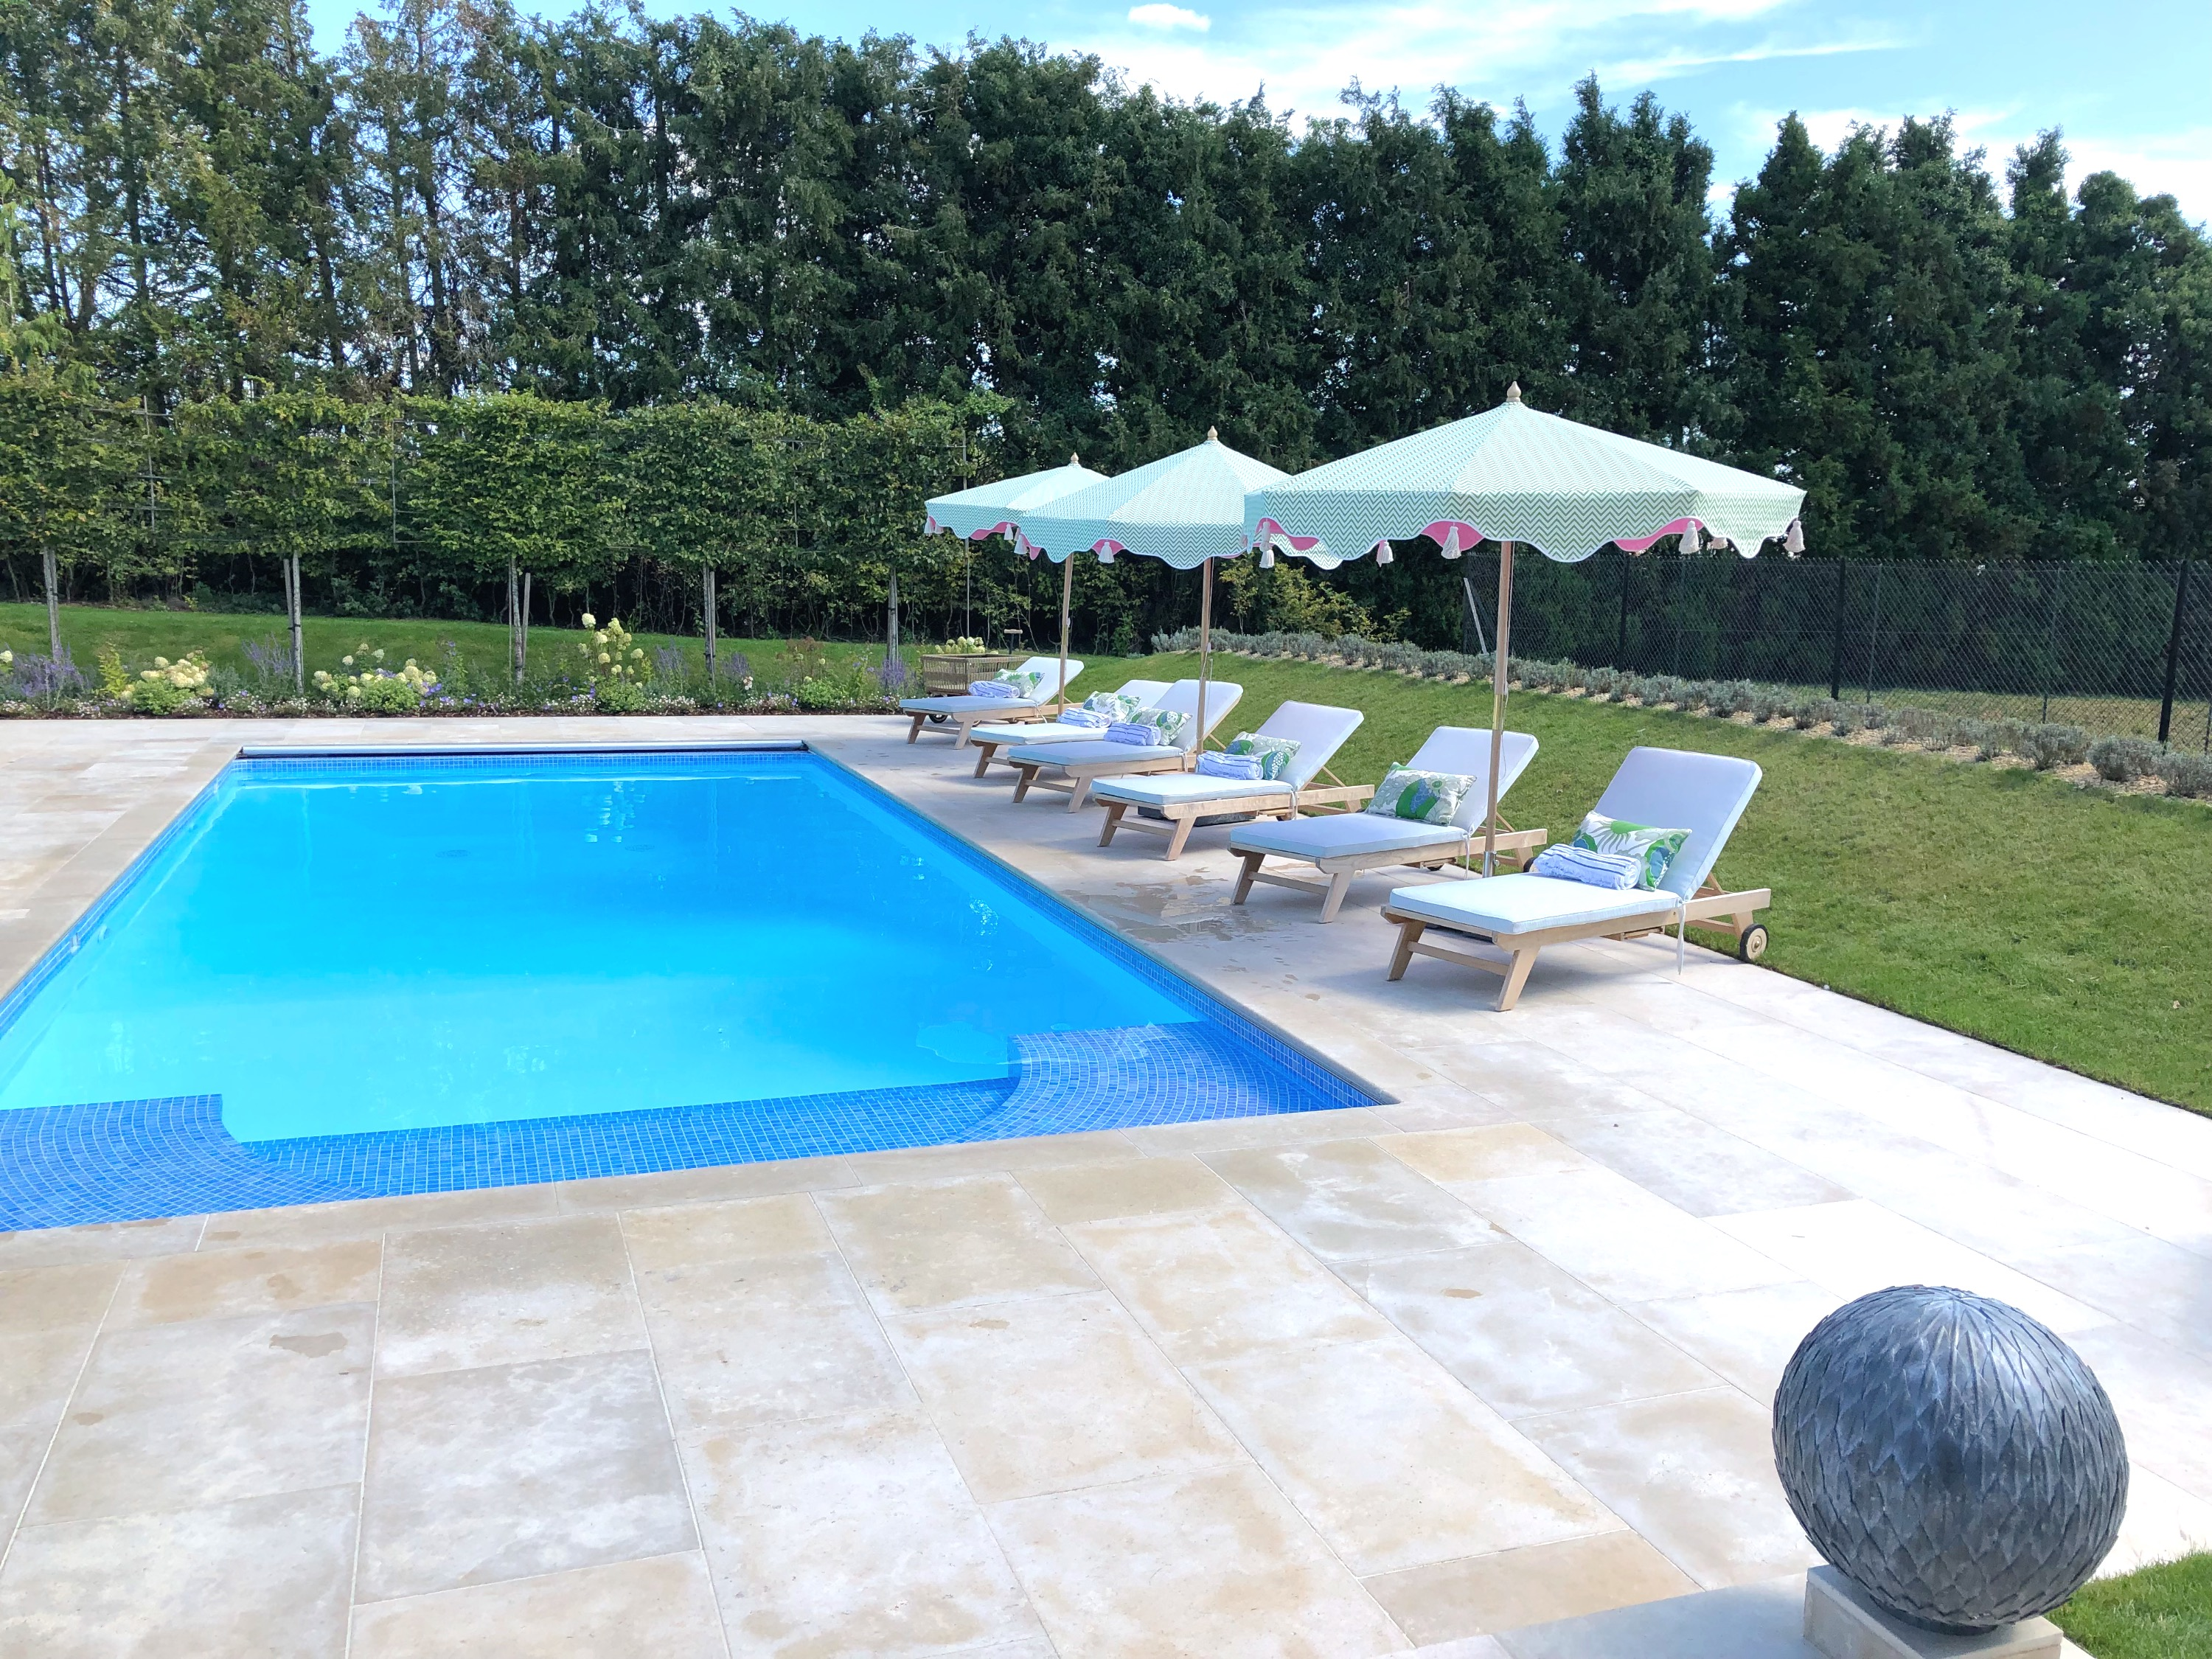 Pool Loungers with Bespoke Cushions & Parasols